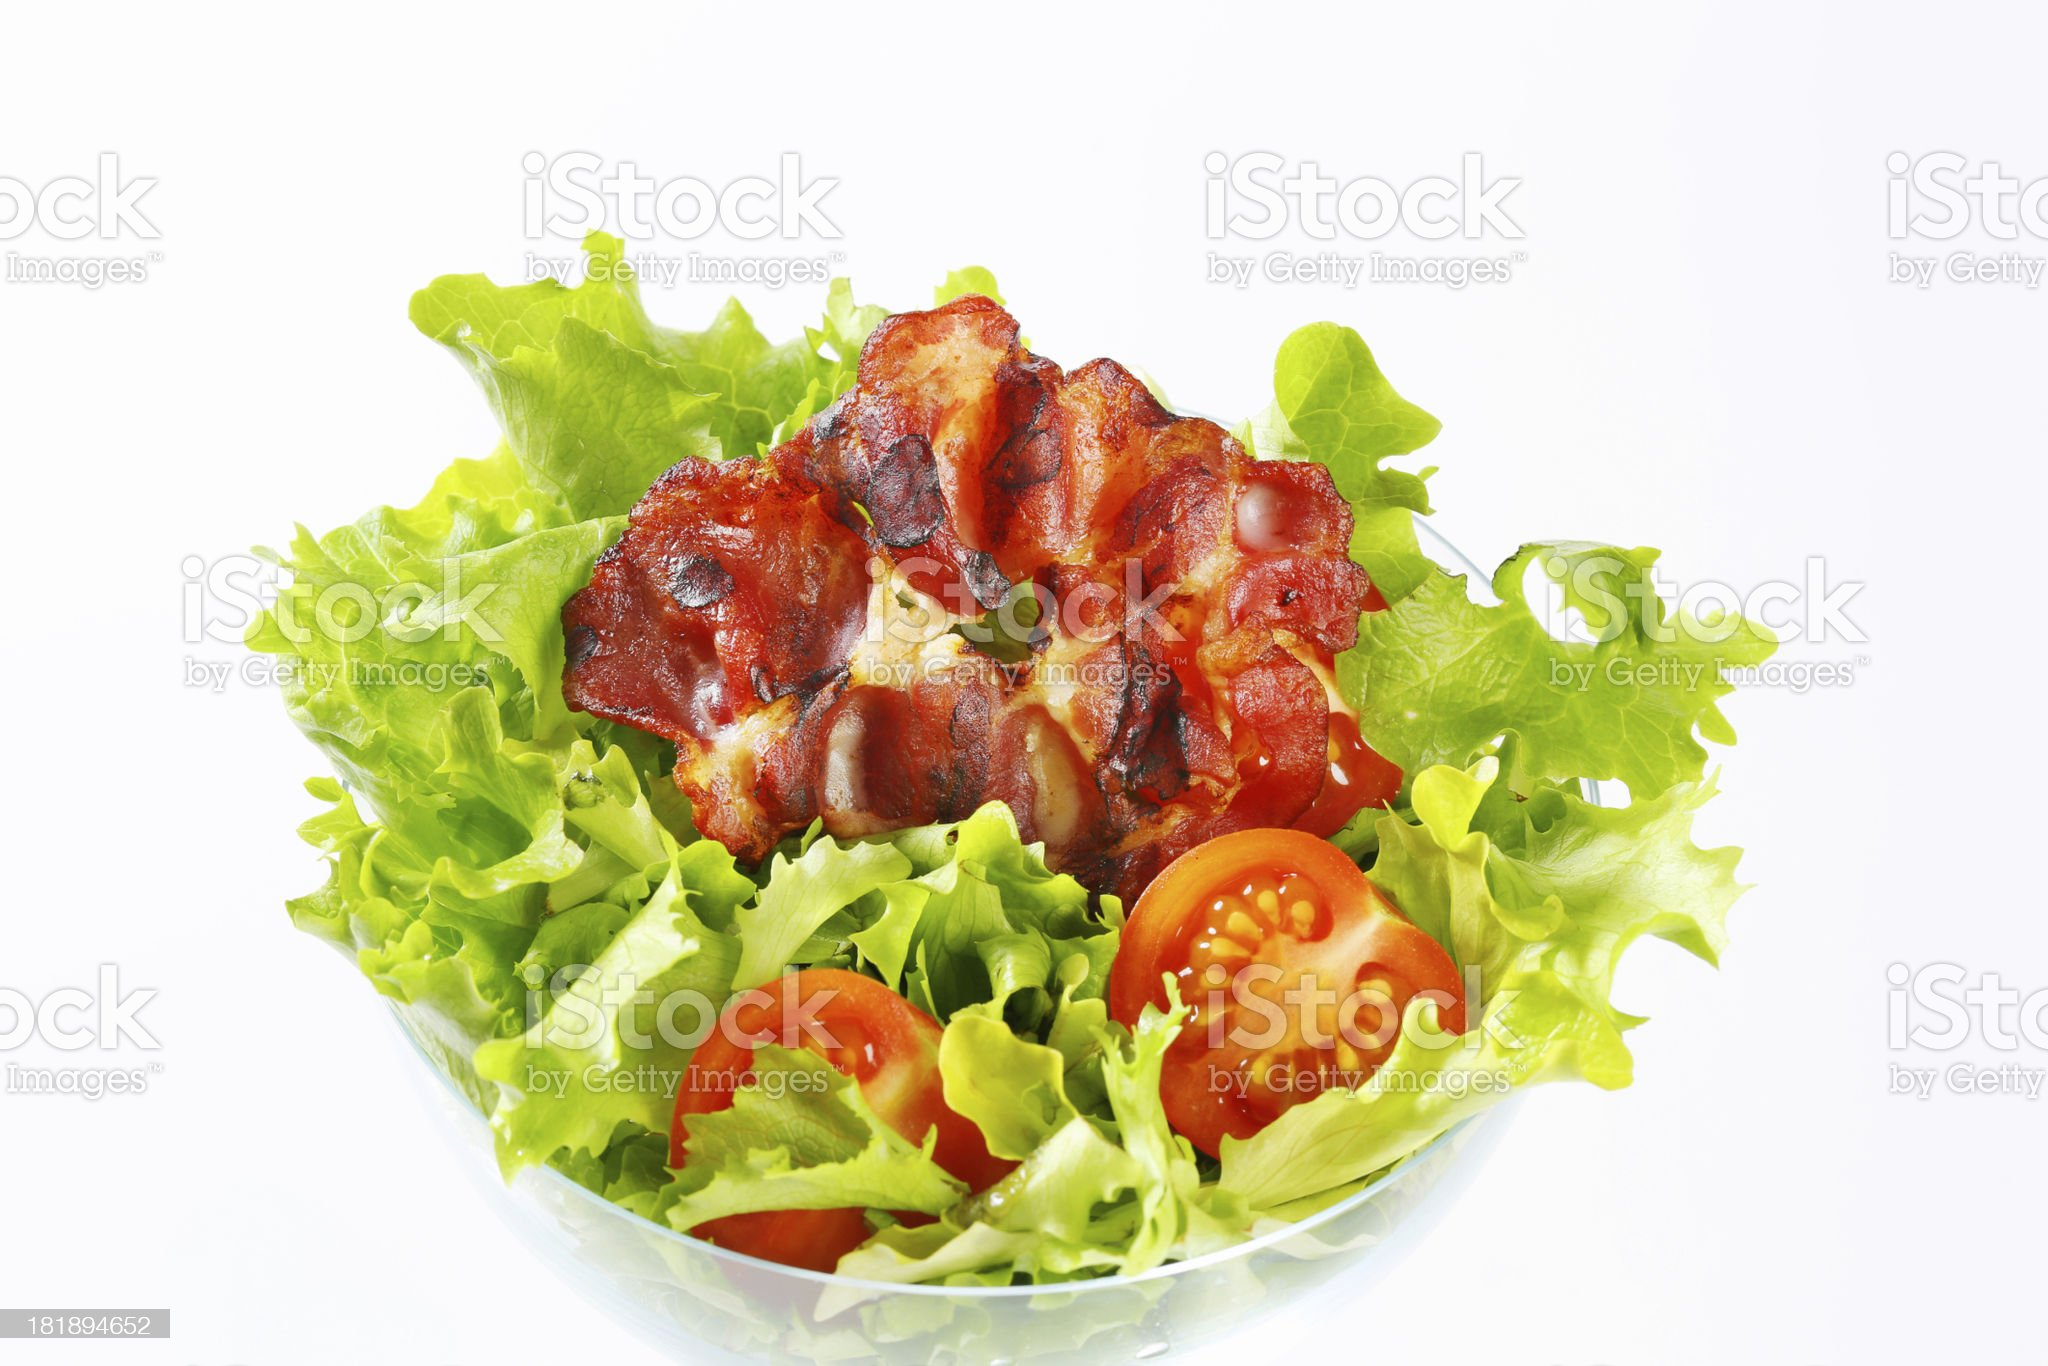 roasted ham slice in a vegetable salad royalty-free stock photo